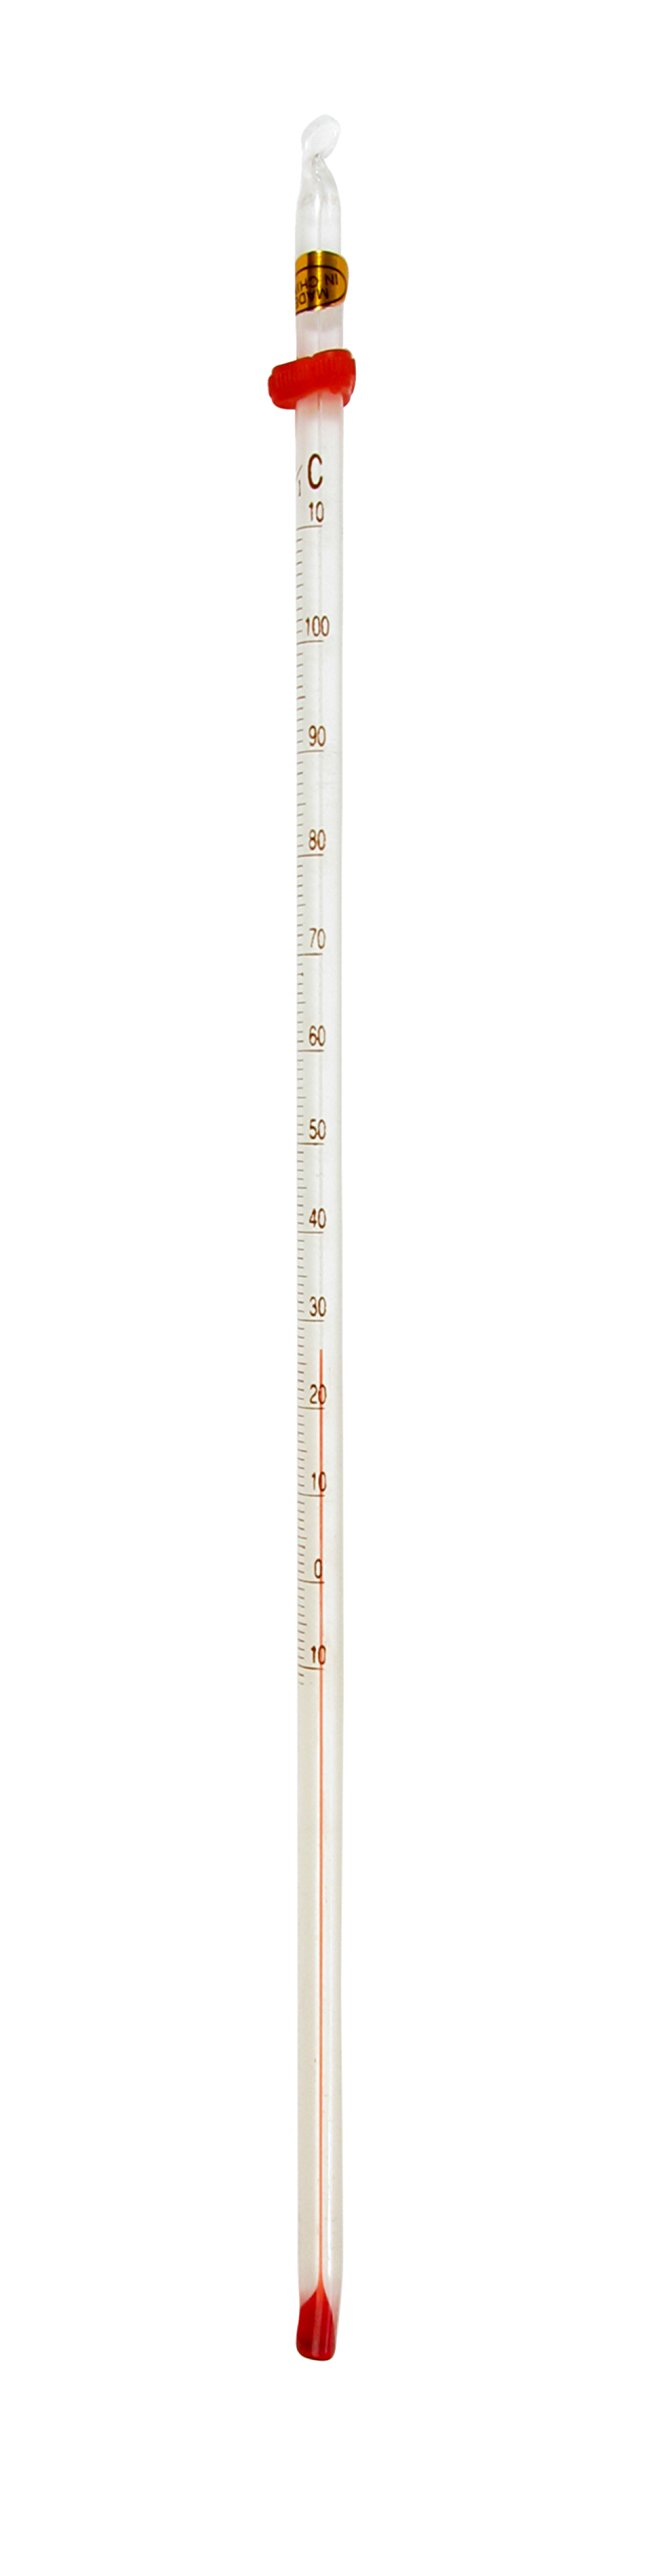 American Educational Partial Immersion Red Alcohol Single Scale Thermometer with White Back, -10 to +110 Degrees C, 300mm Length (Bundle of Five)